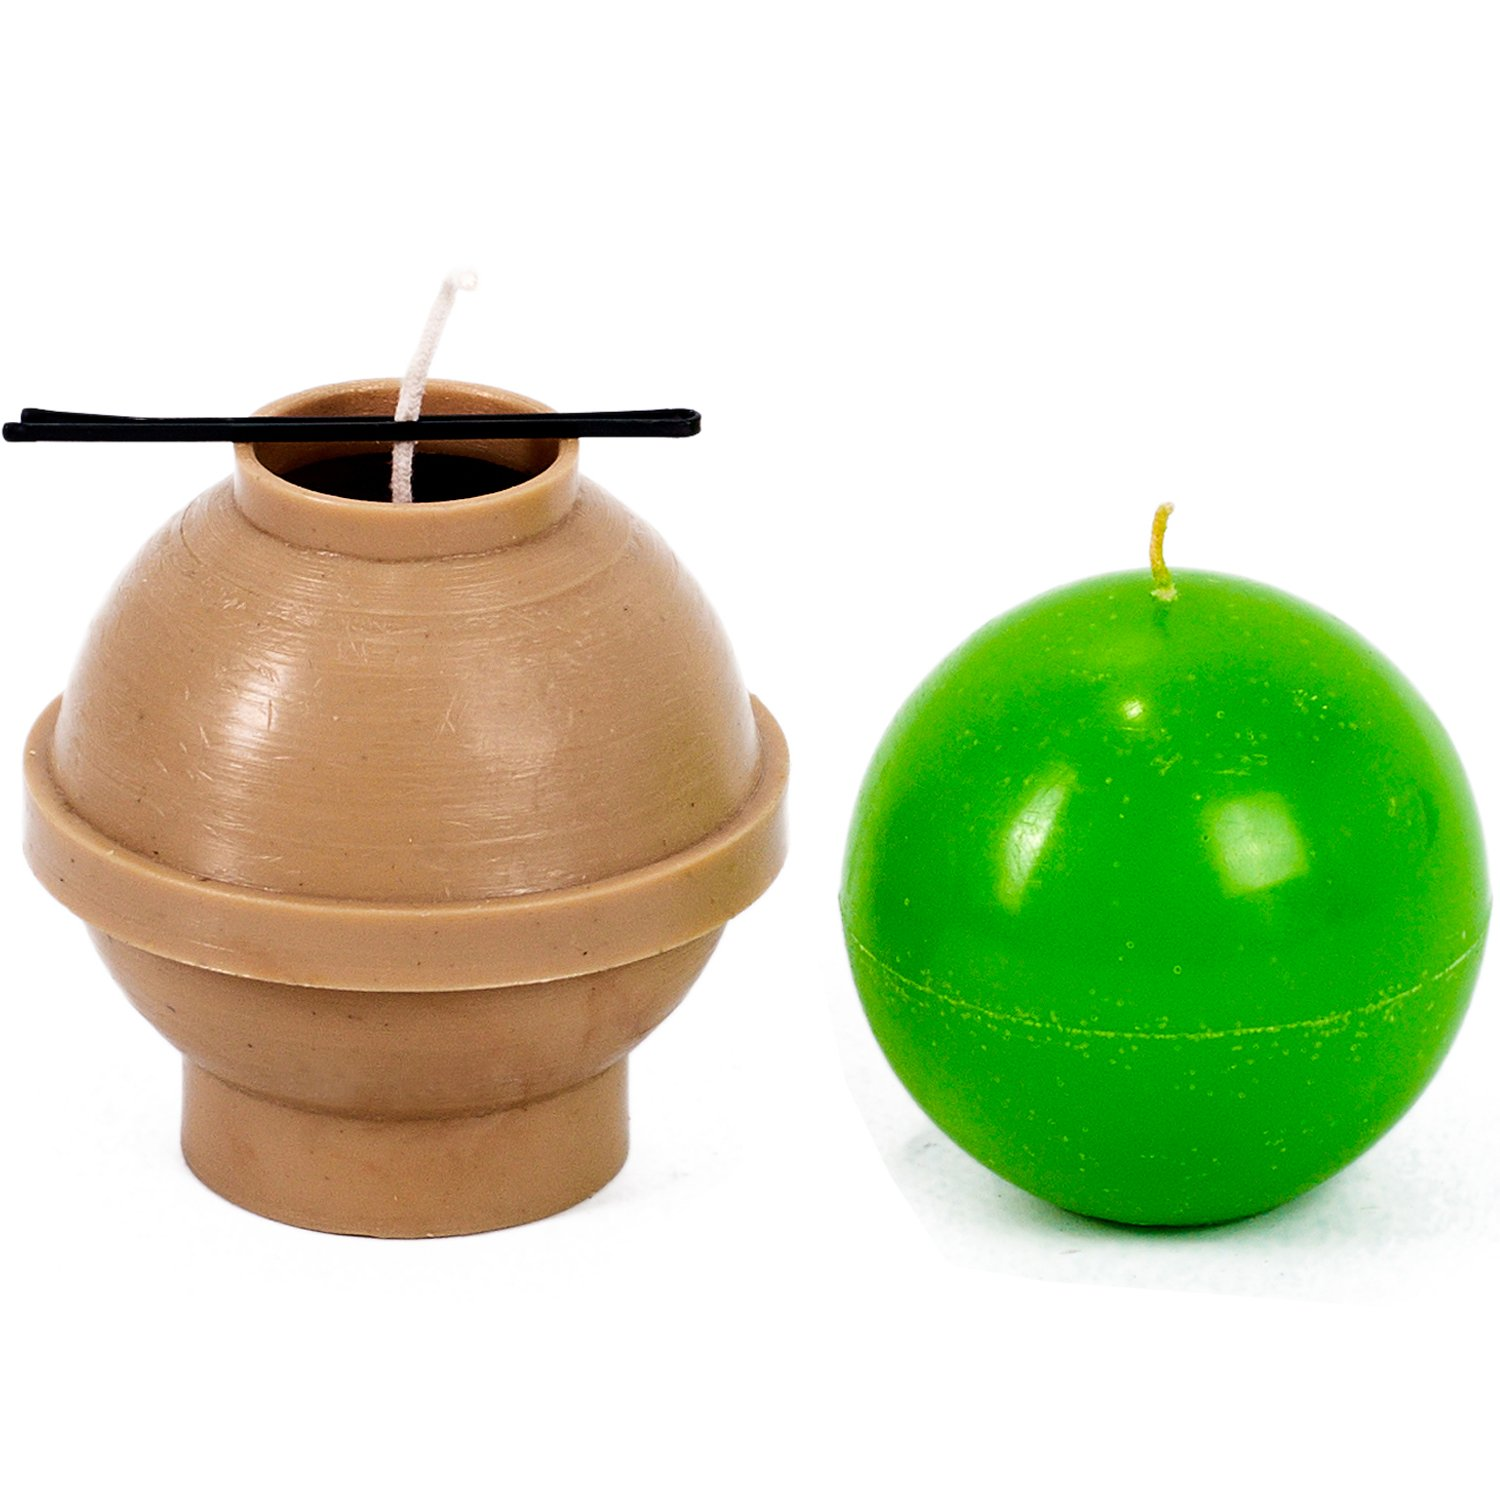 Ball diameter: 4.7 in - Sphere - 30 ft. of wick included as a gift - Plastic candle molds for making candles Candle Shop